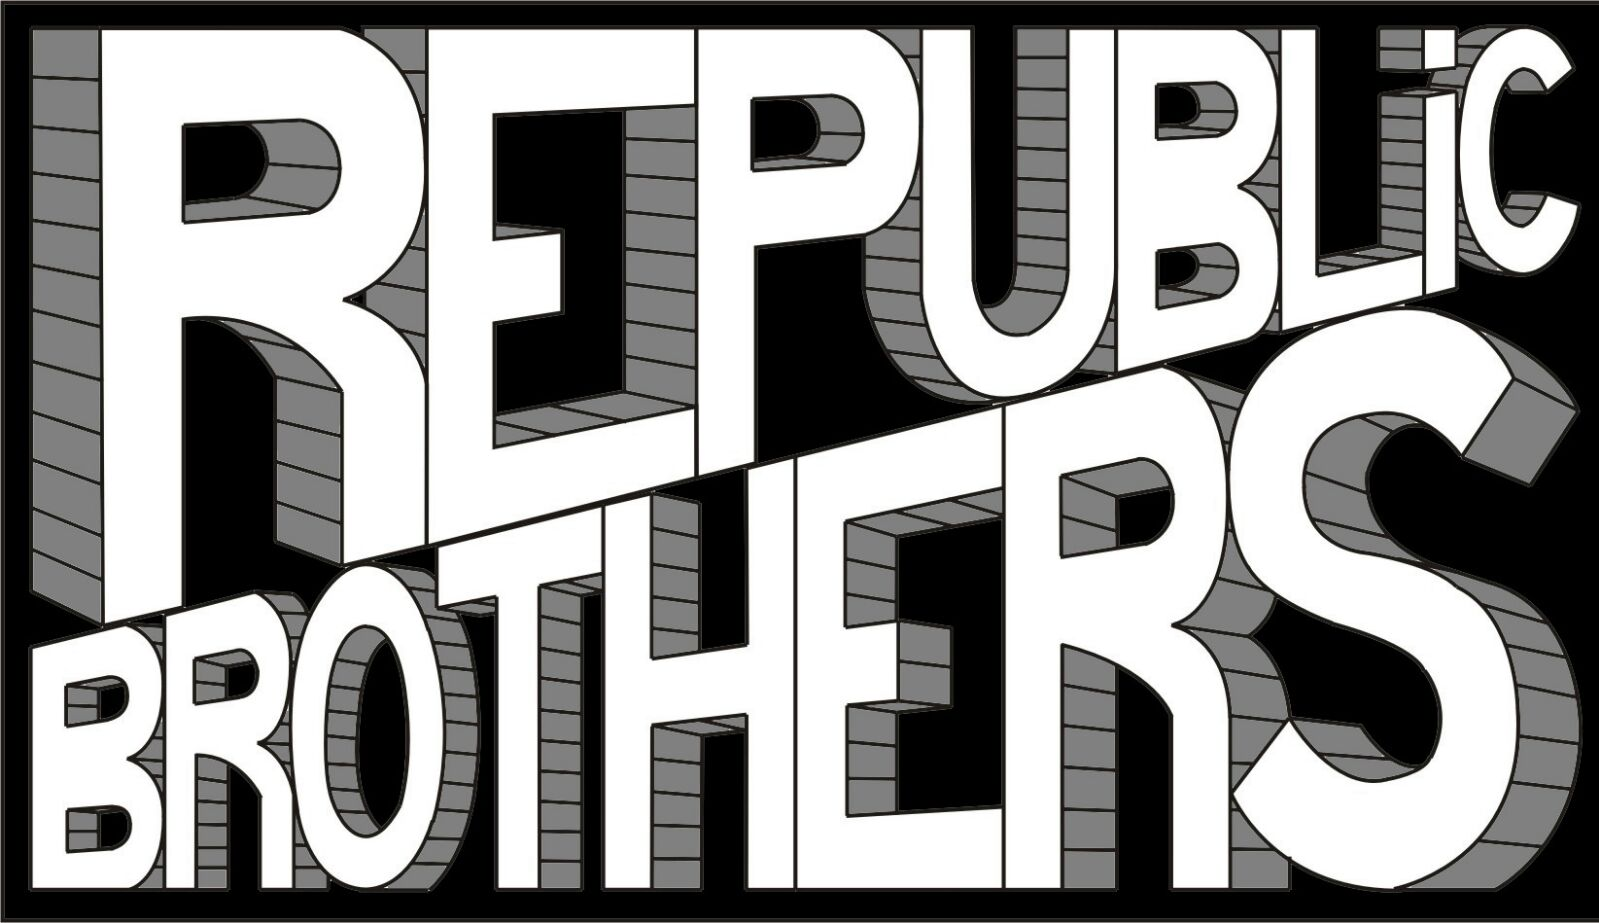 REPUBLIC BROTHERS